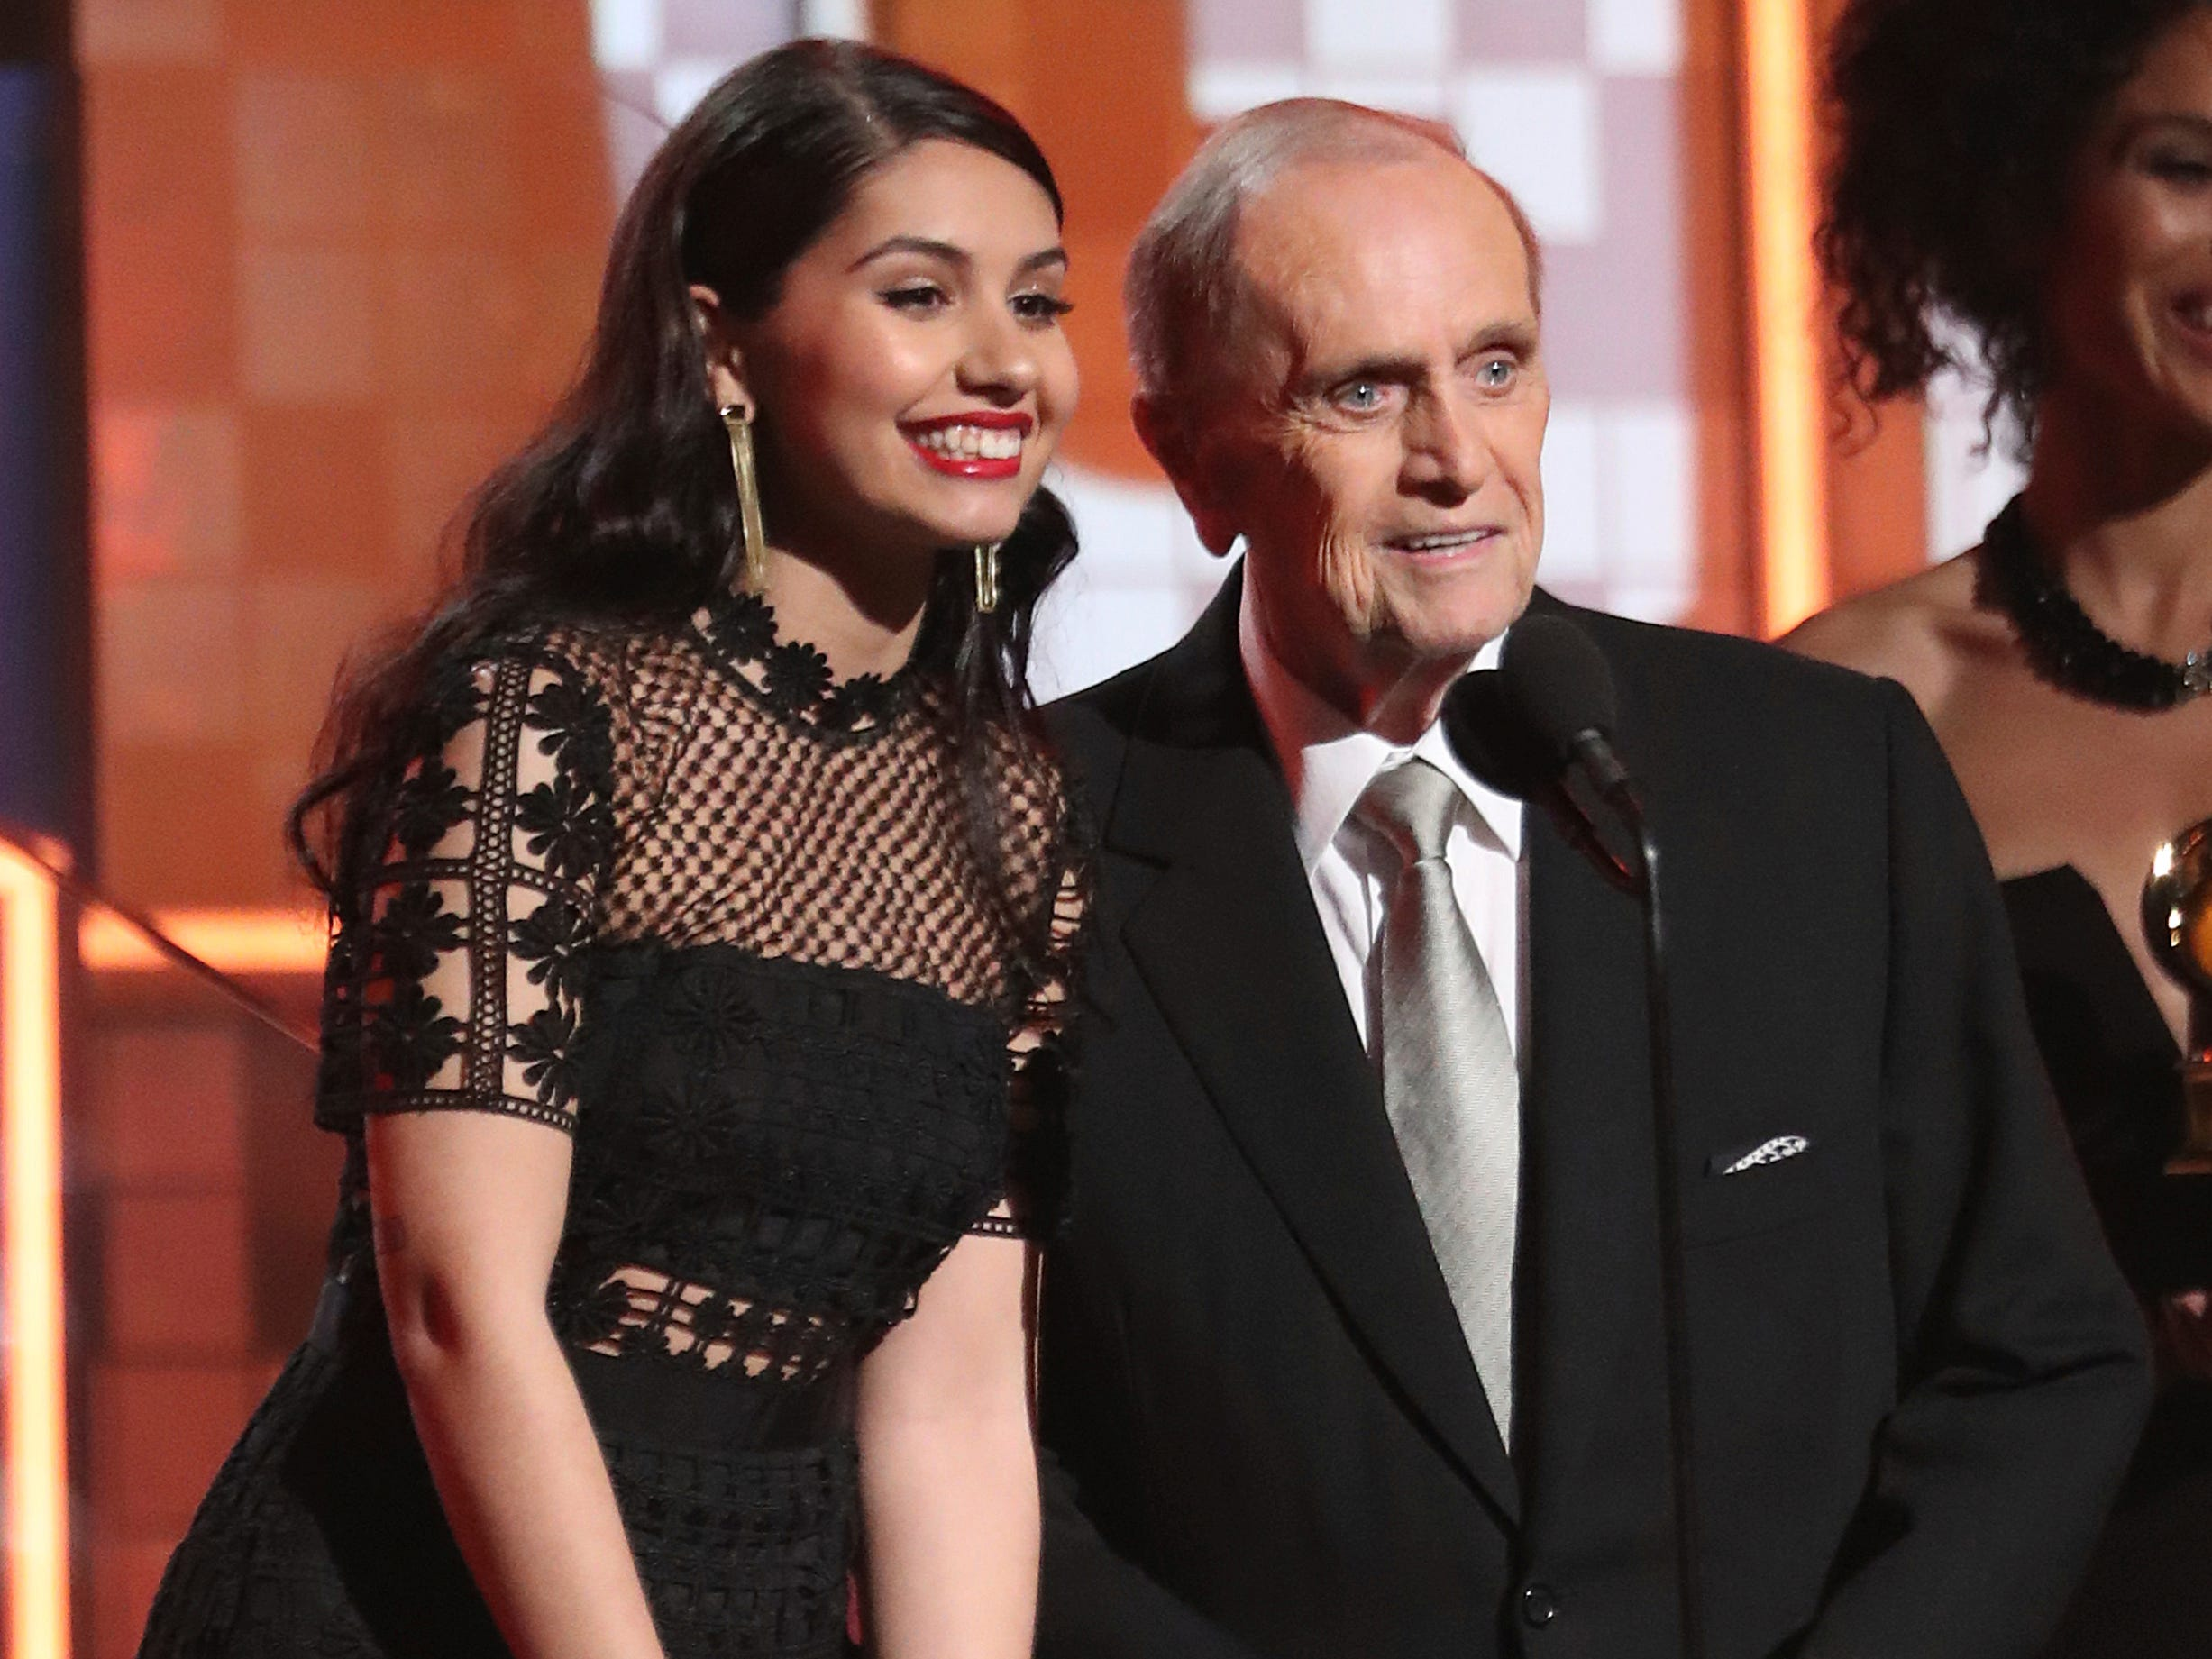 Alessia Cara, left, and Bob Newhart present the award for best new artist at the 61st annual Grammy Awards on Sunday, Feb. 10, 2019, in Los Angeles.